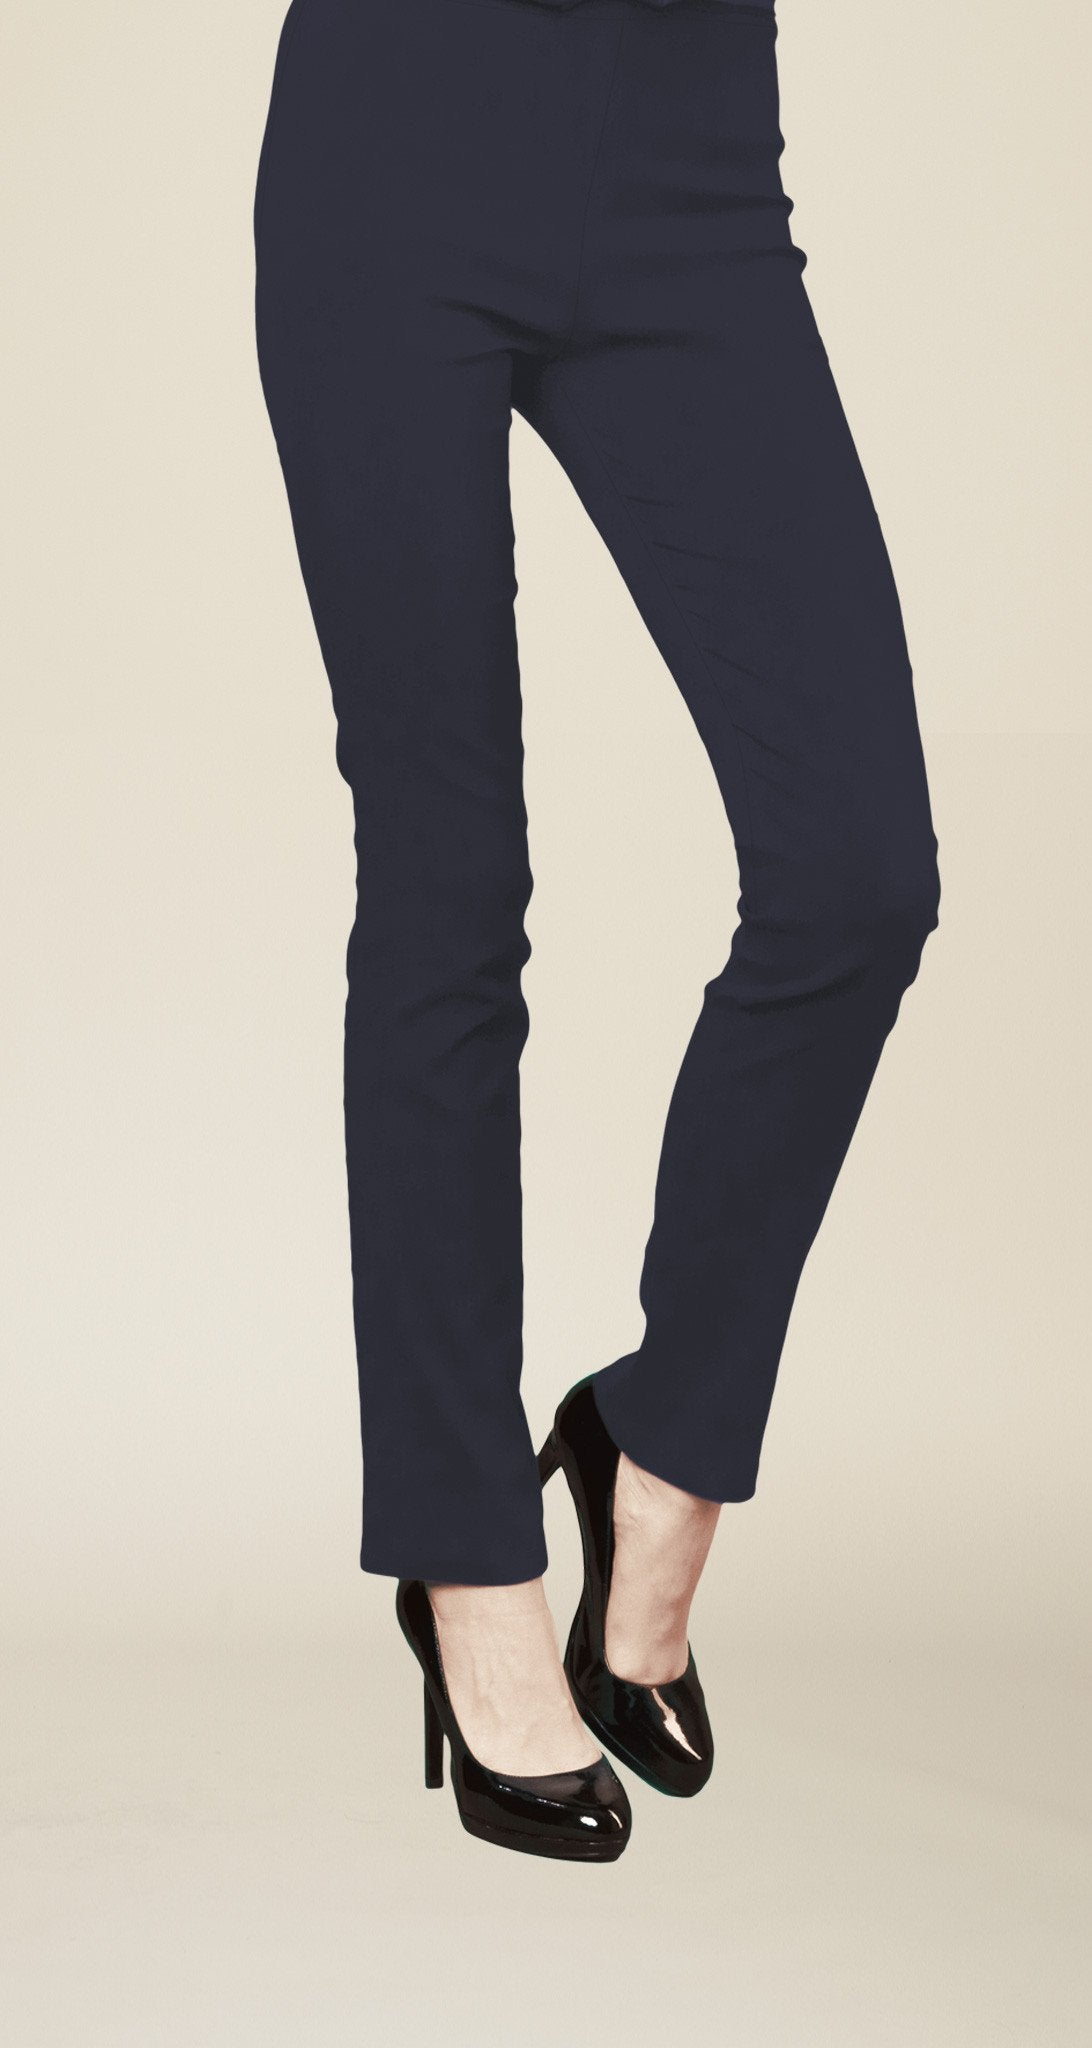 4-Way Stretch Pant